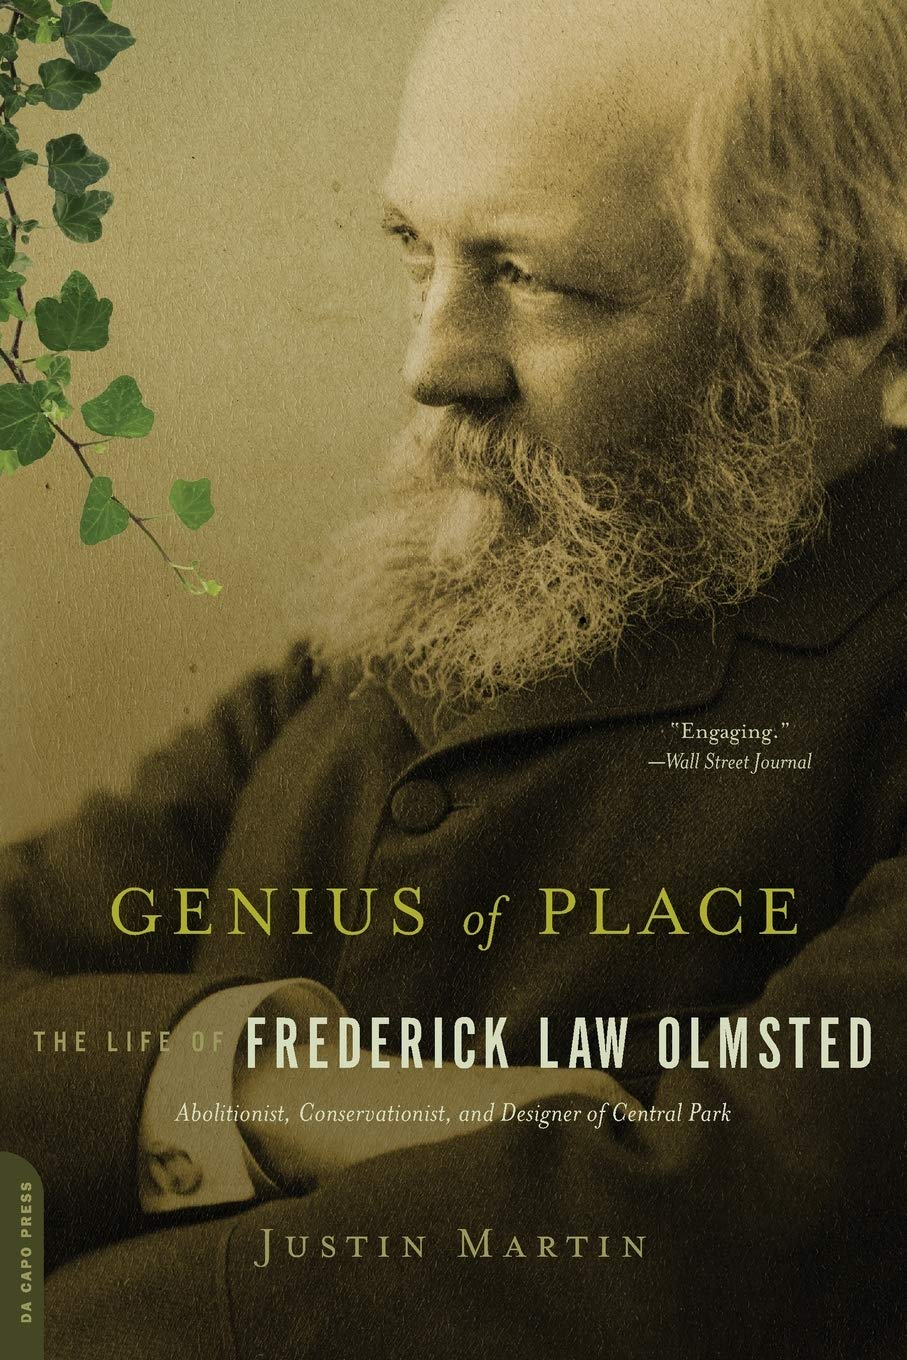 Genius of Place: The Life of Frederick Law Olmsted (A Merloyd Lawrence  Book): Martin, Justin: 9780306821486: Amazon.com: Books